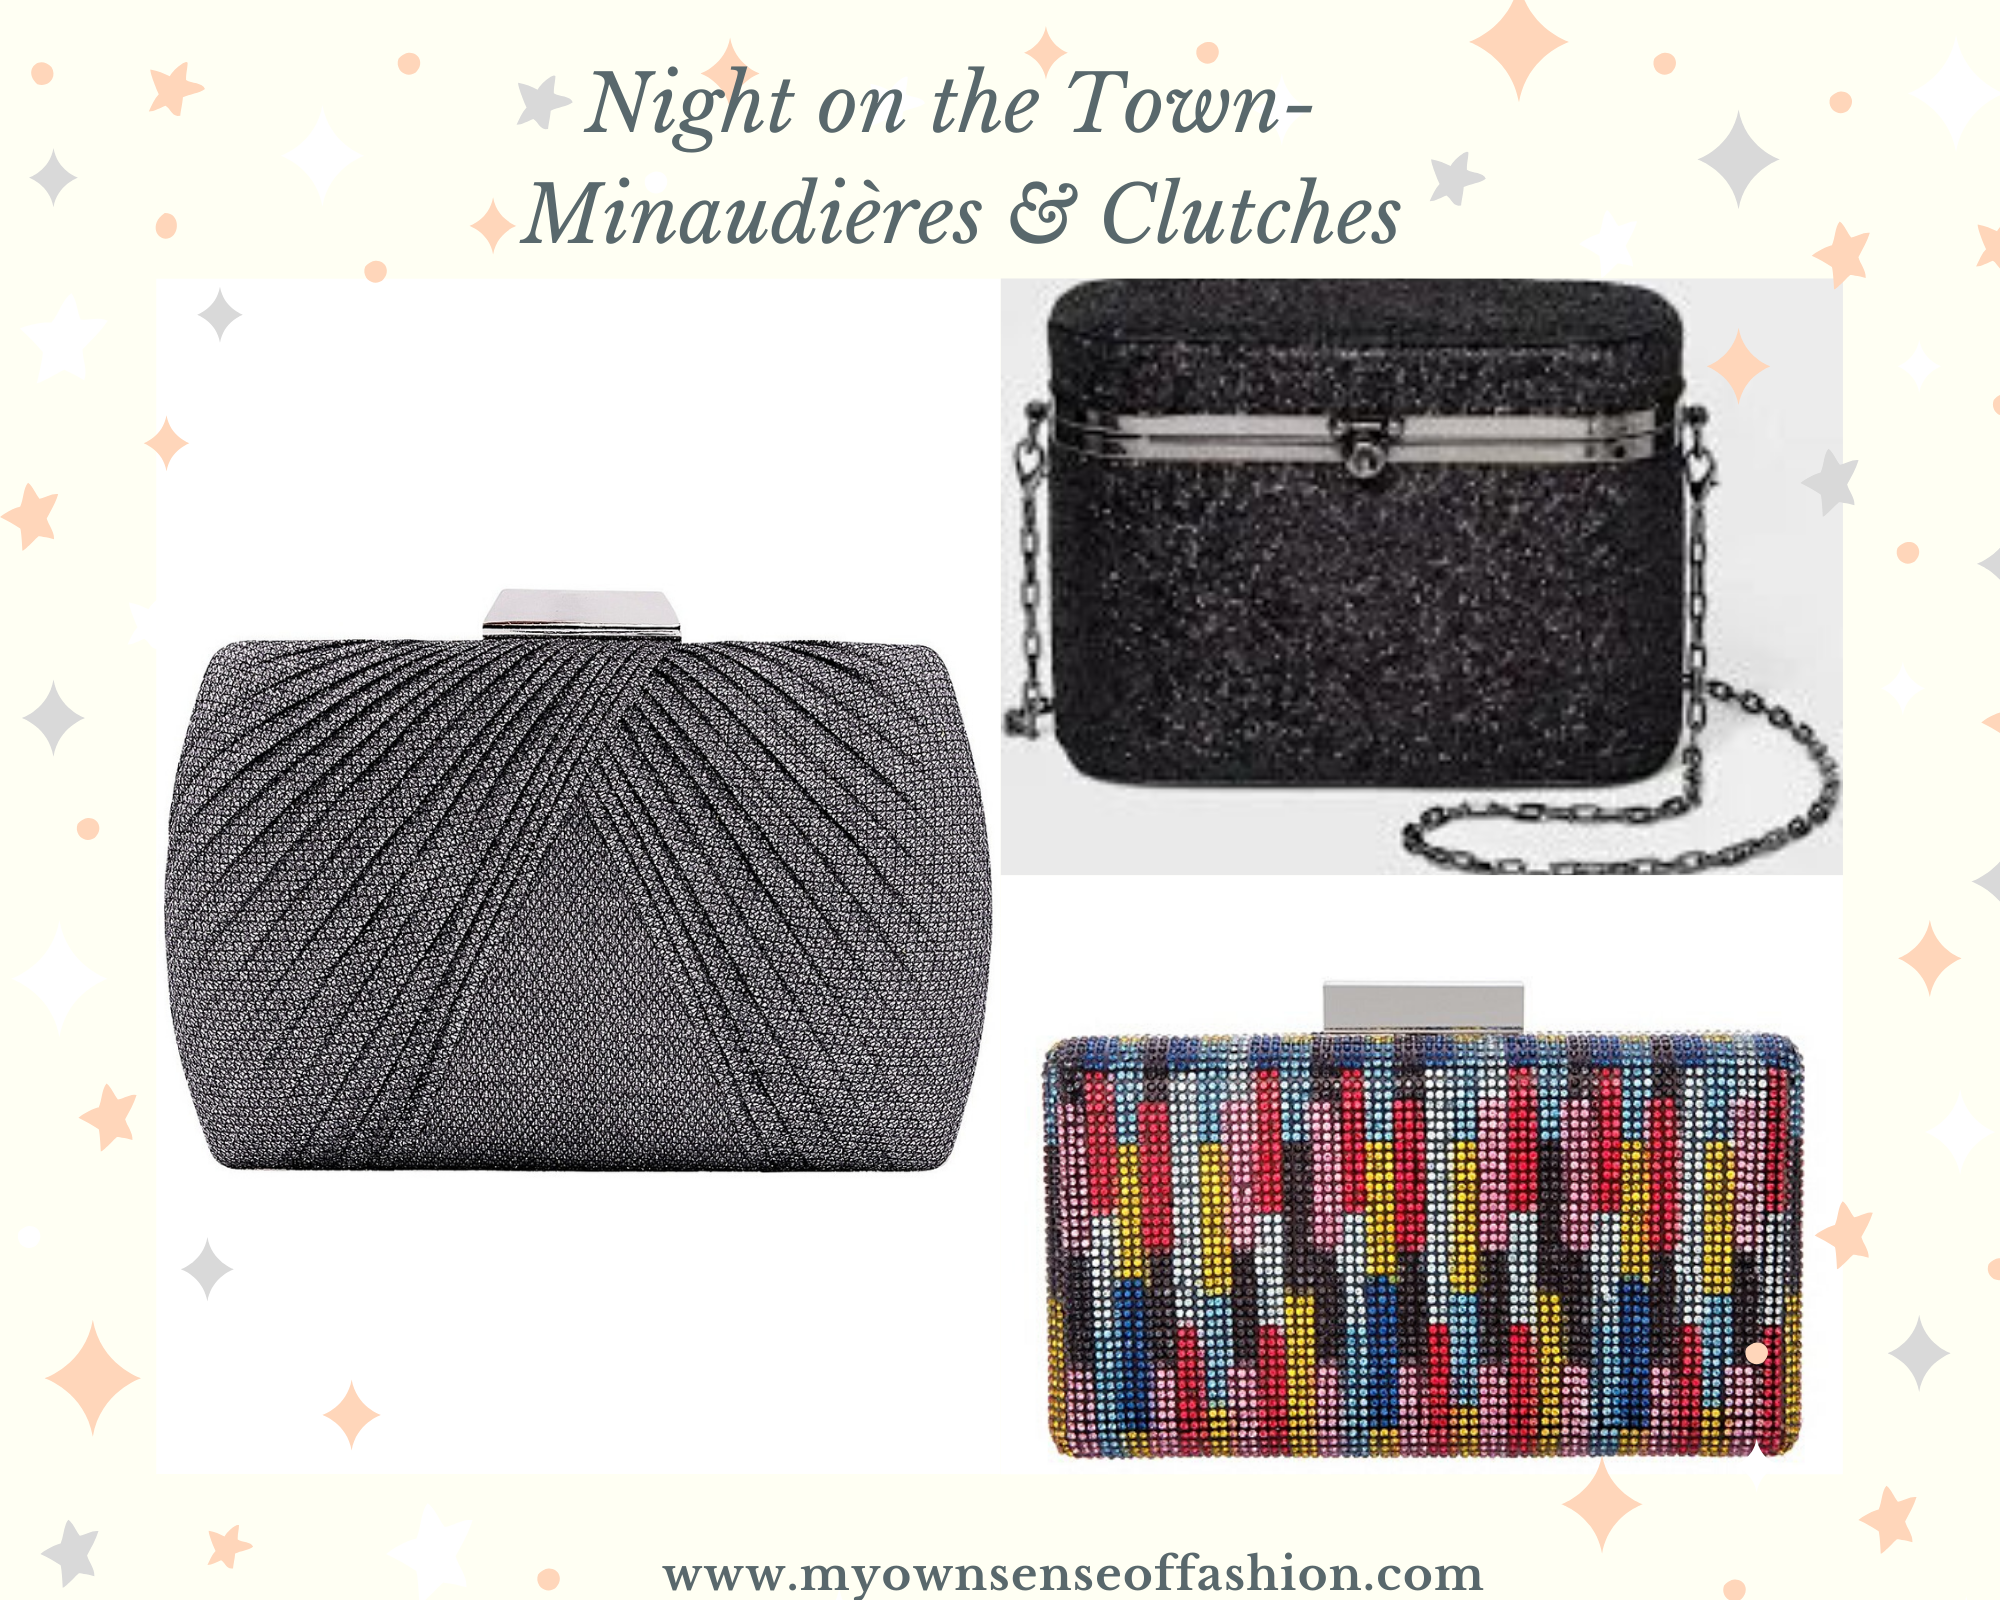 Night on the Town- Minaudières & Clutches